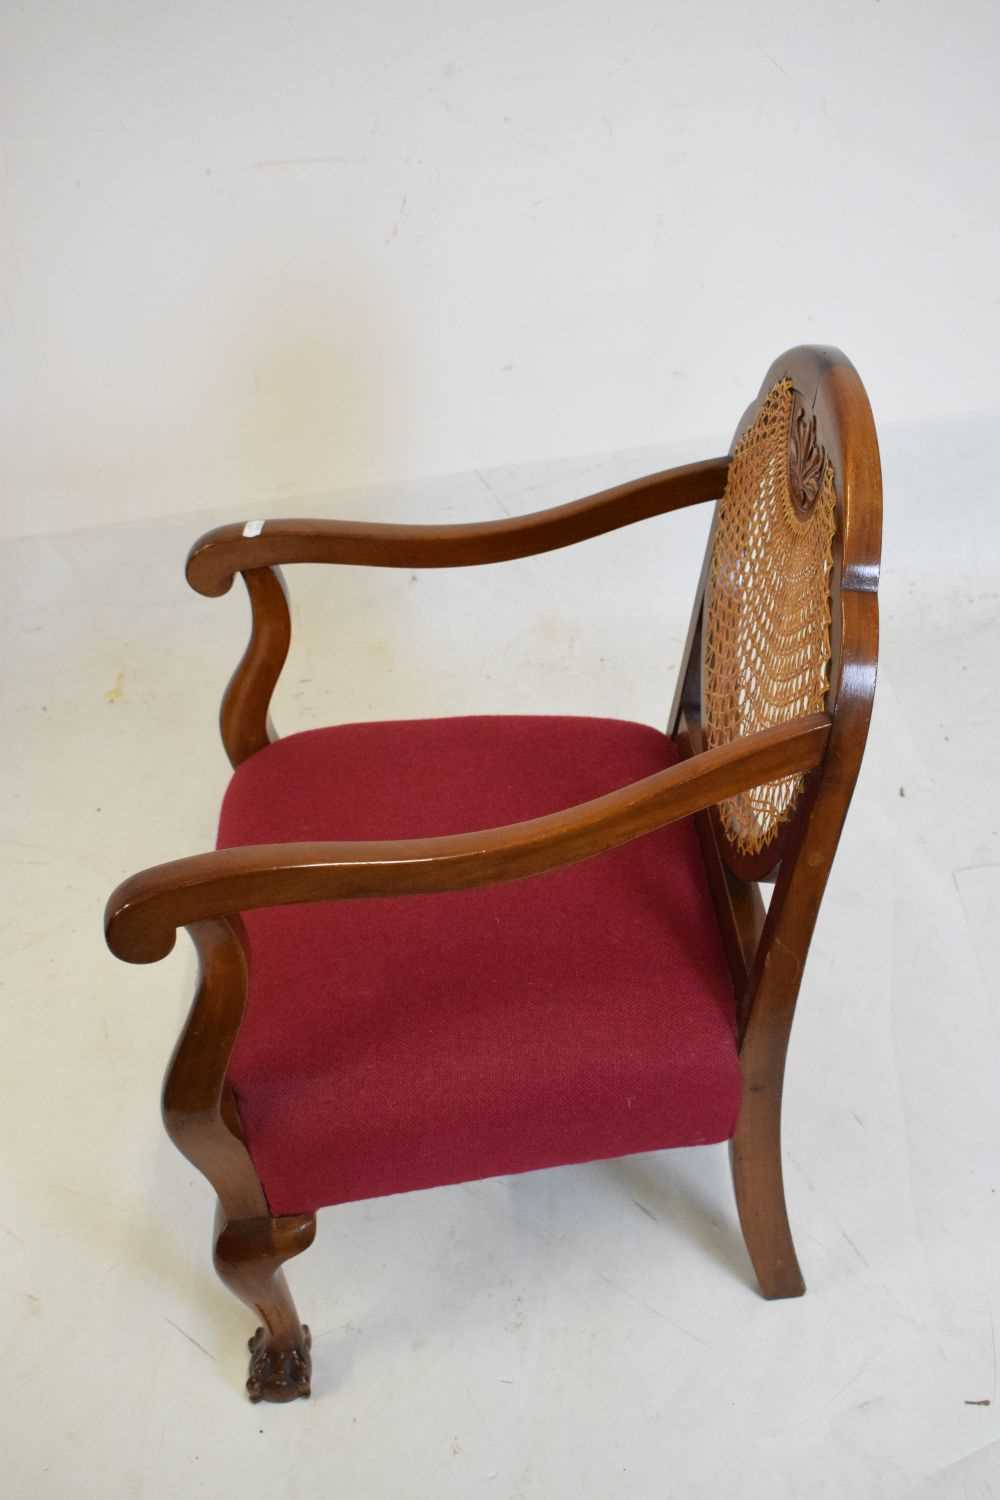 1920's mahogany and cane bergere chair - Image 3 of 5